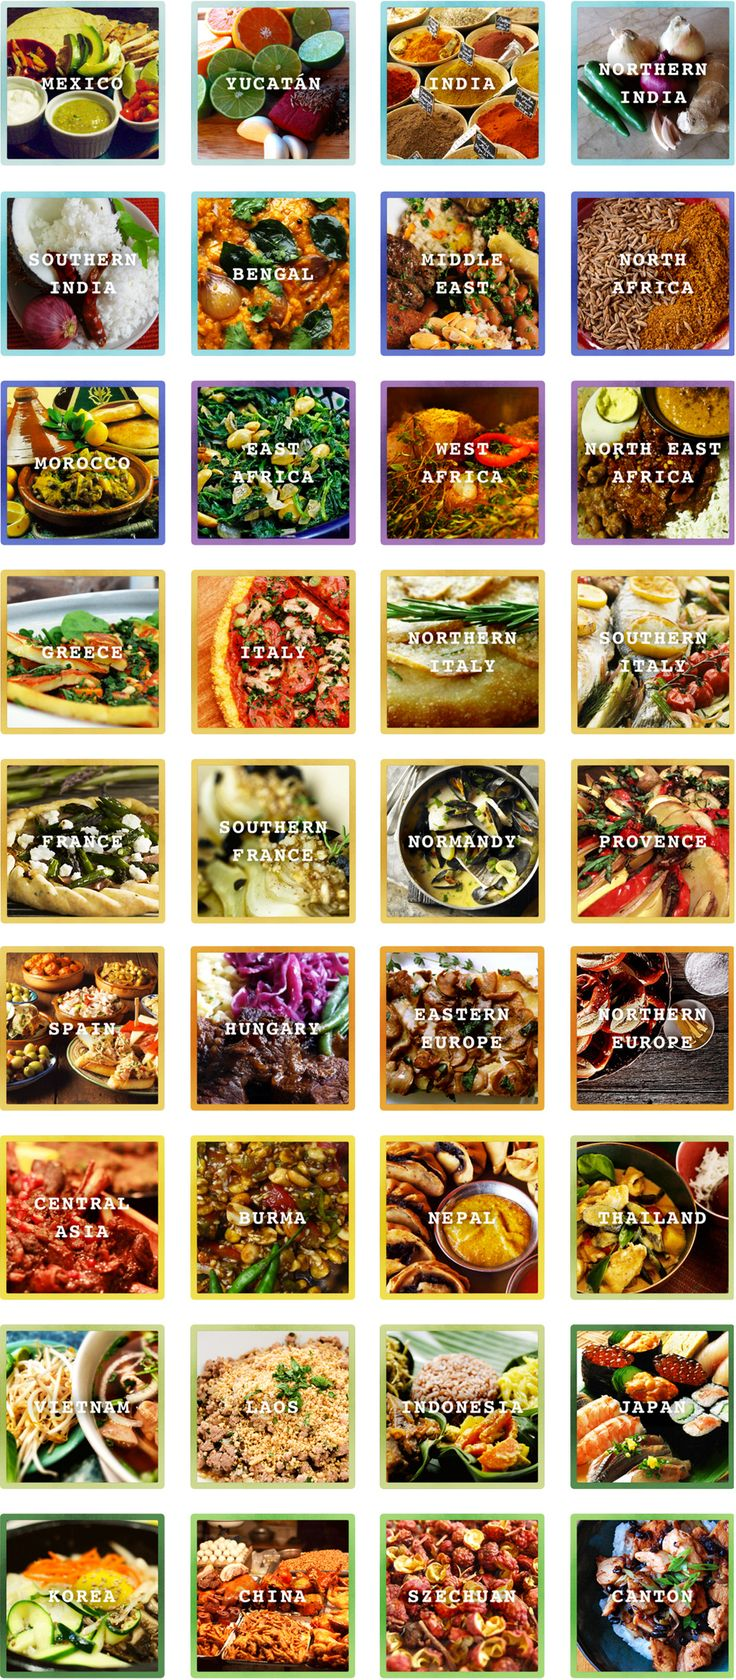 A World Map of Flavors - 36 Regions, 36 Herb and Spice Combinations (via fourhourworkweek.com) - another gem from Tim Ferriss